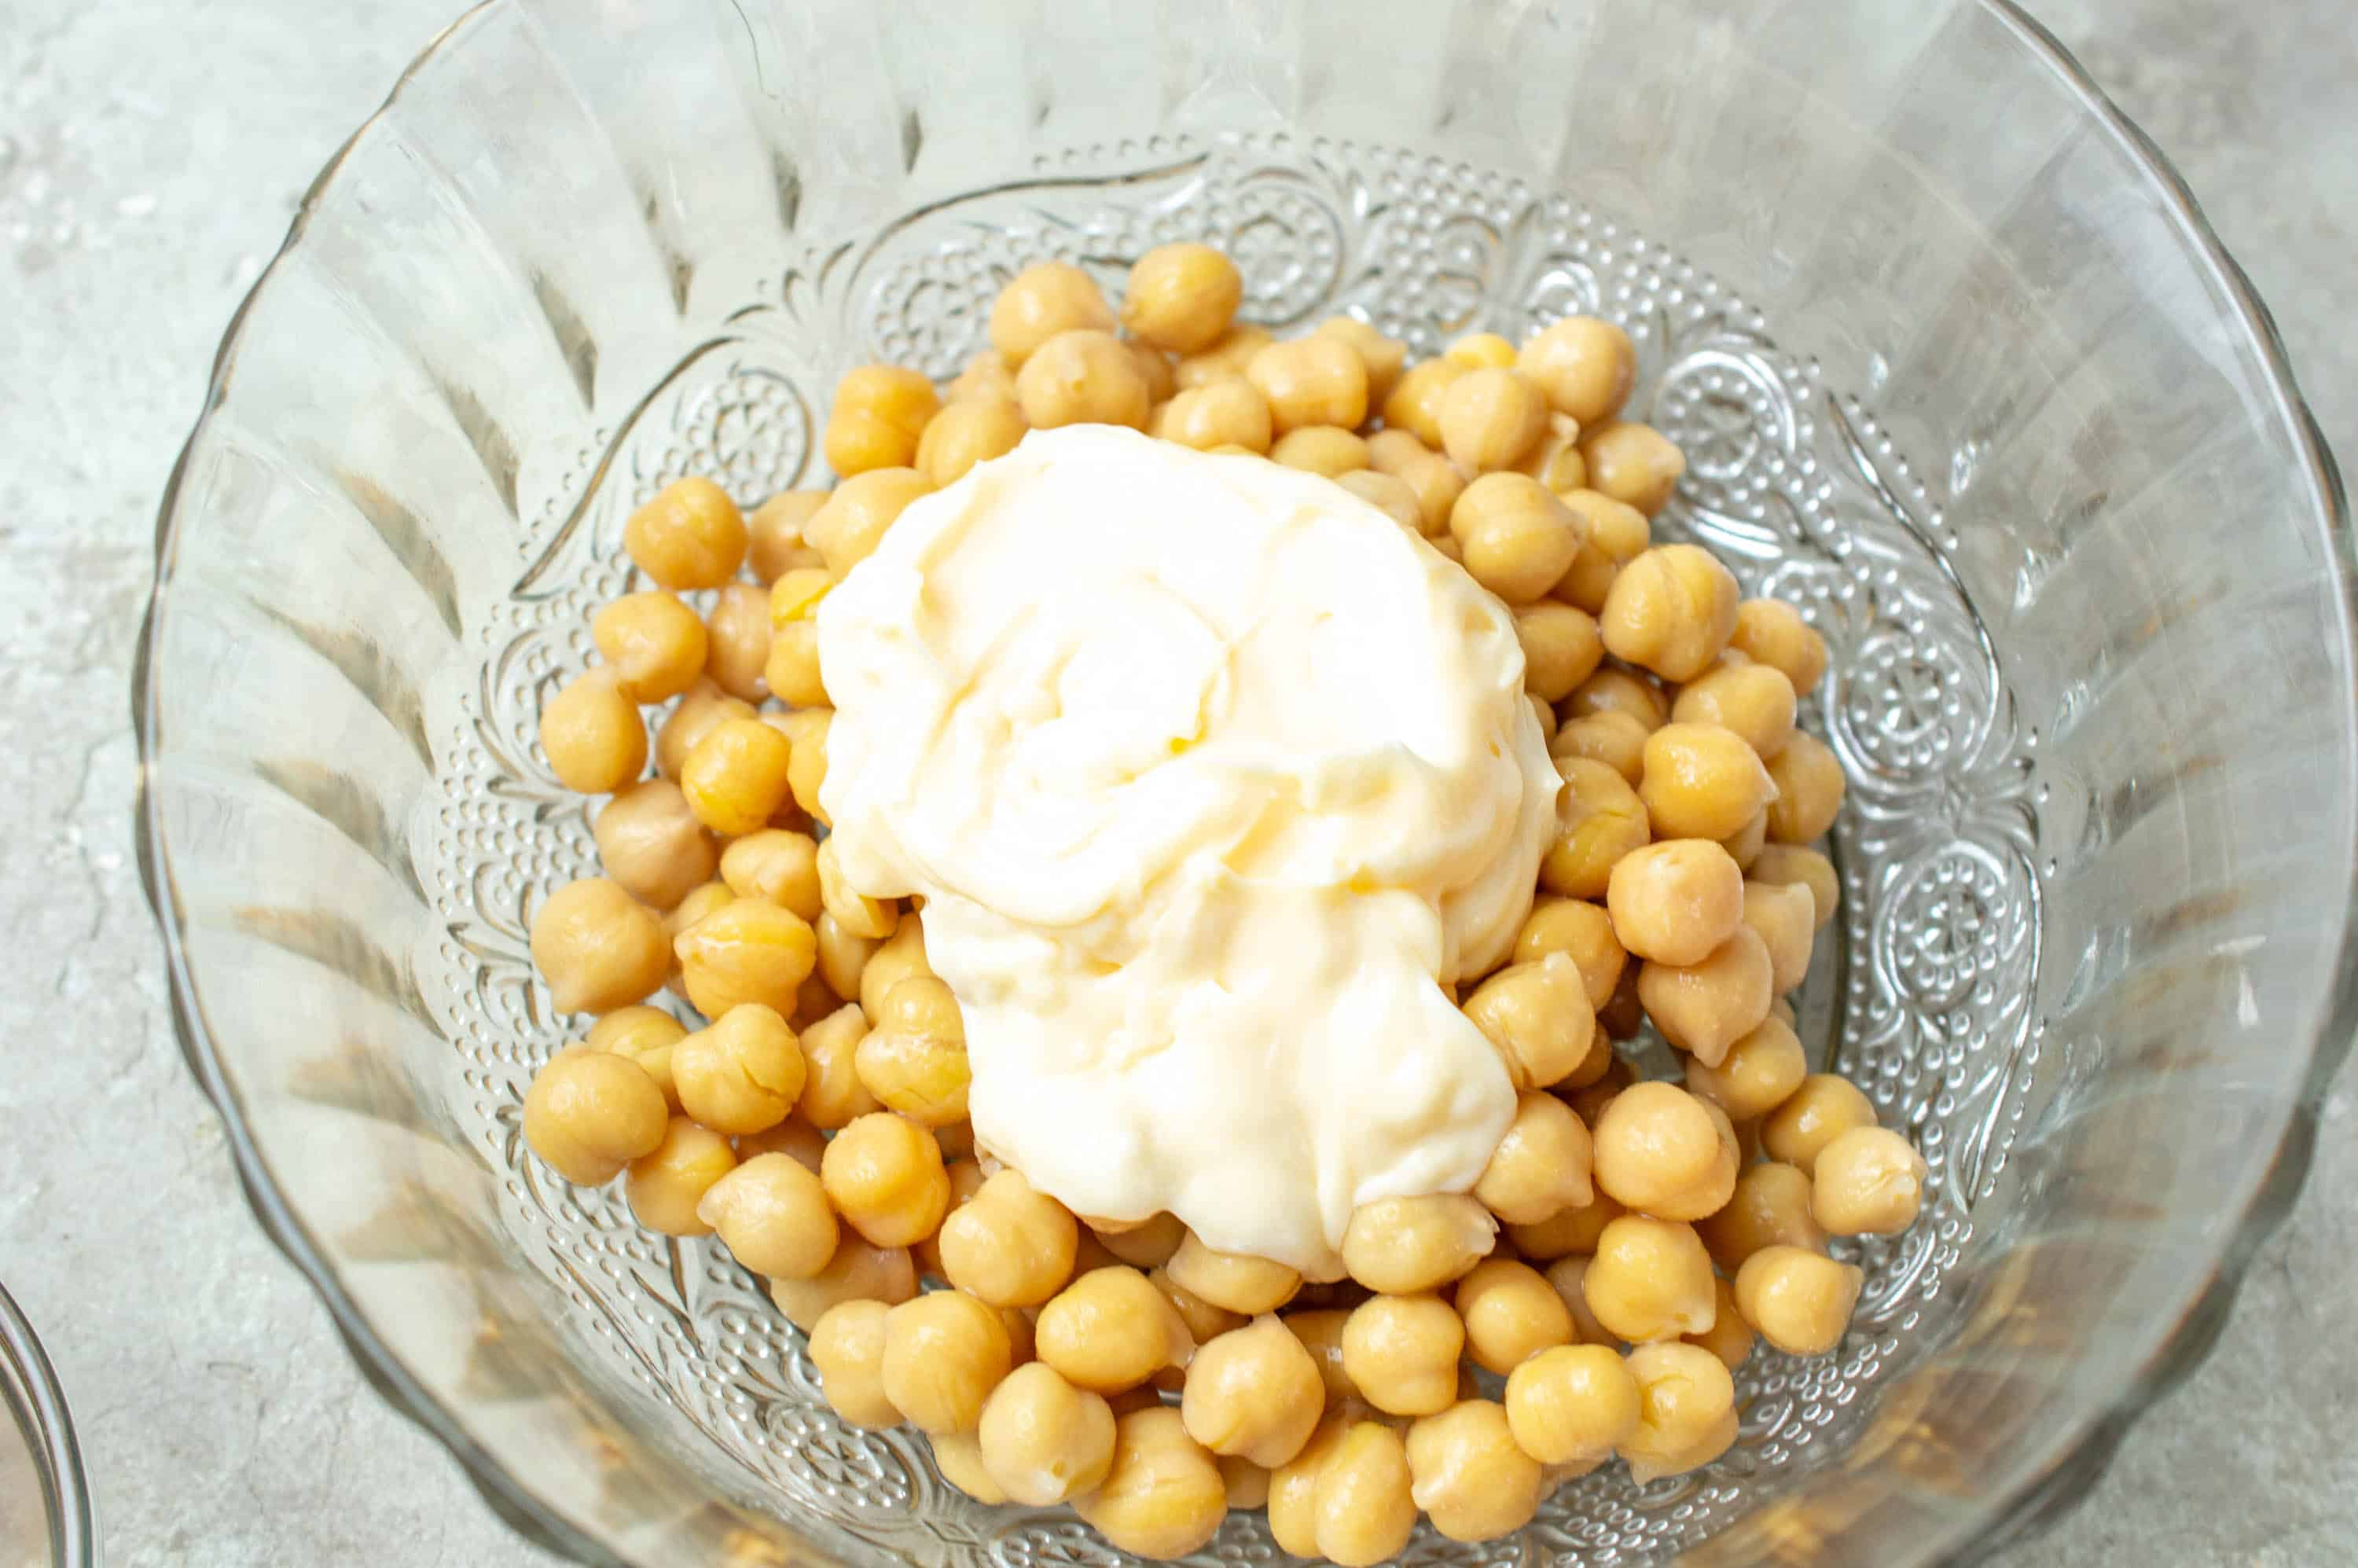 chickpeas in bowl with mayonnaise